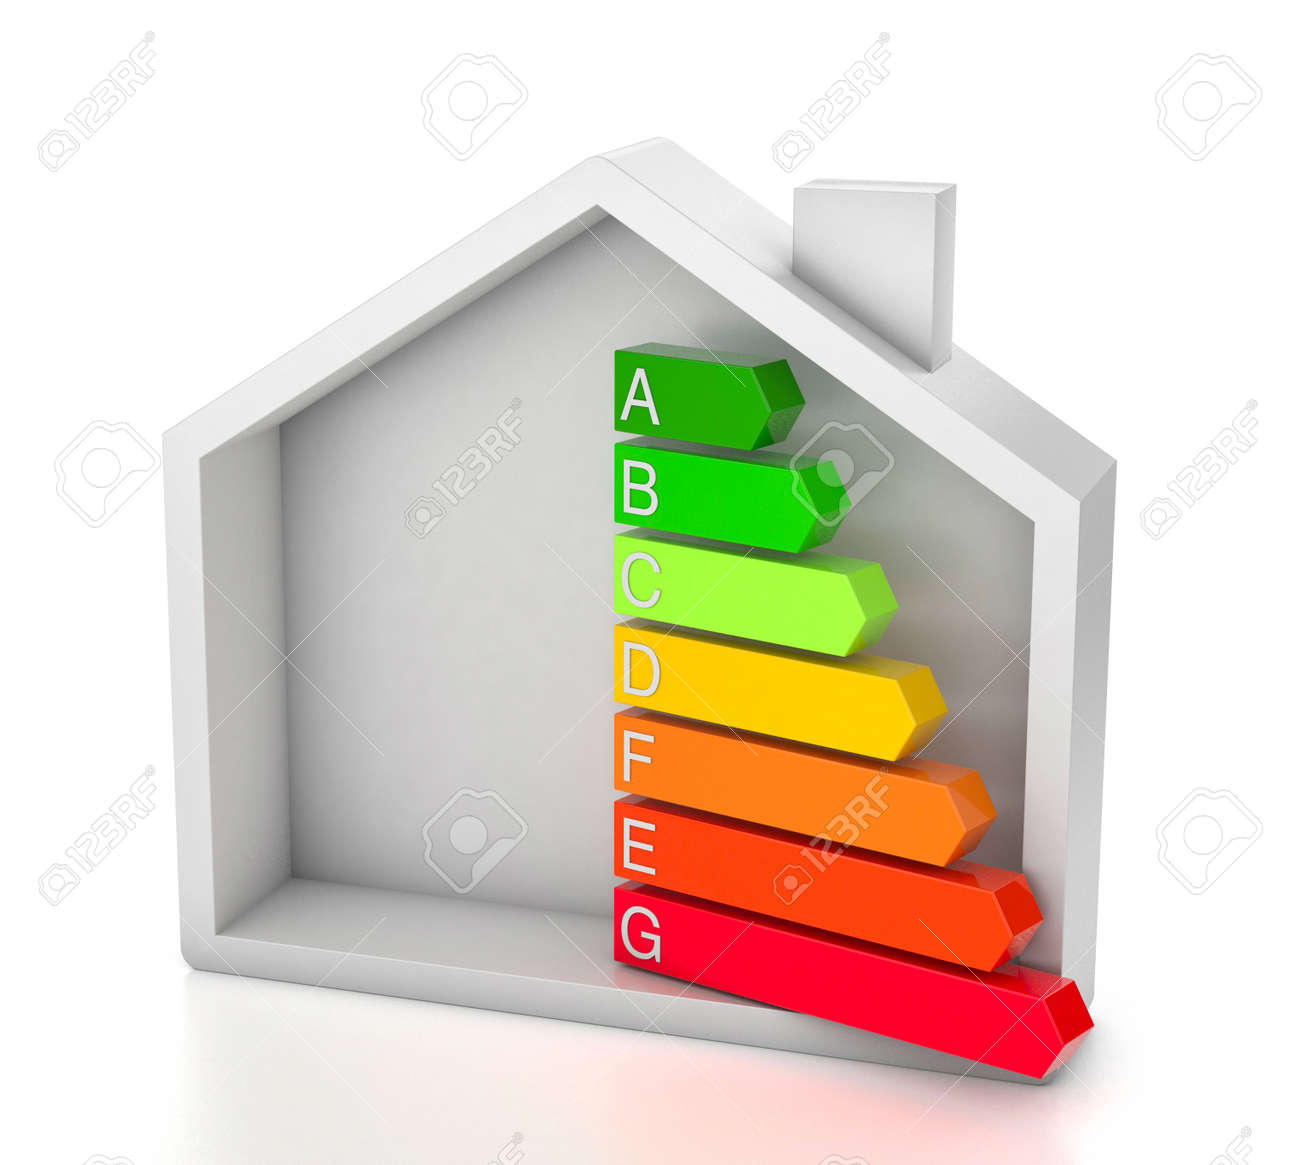 Home energy efficiency rating. House and colored arrows graphics. isolated on white background. 3d render - 171484095